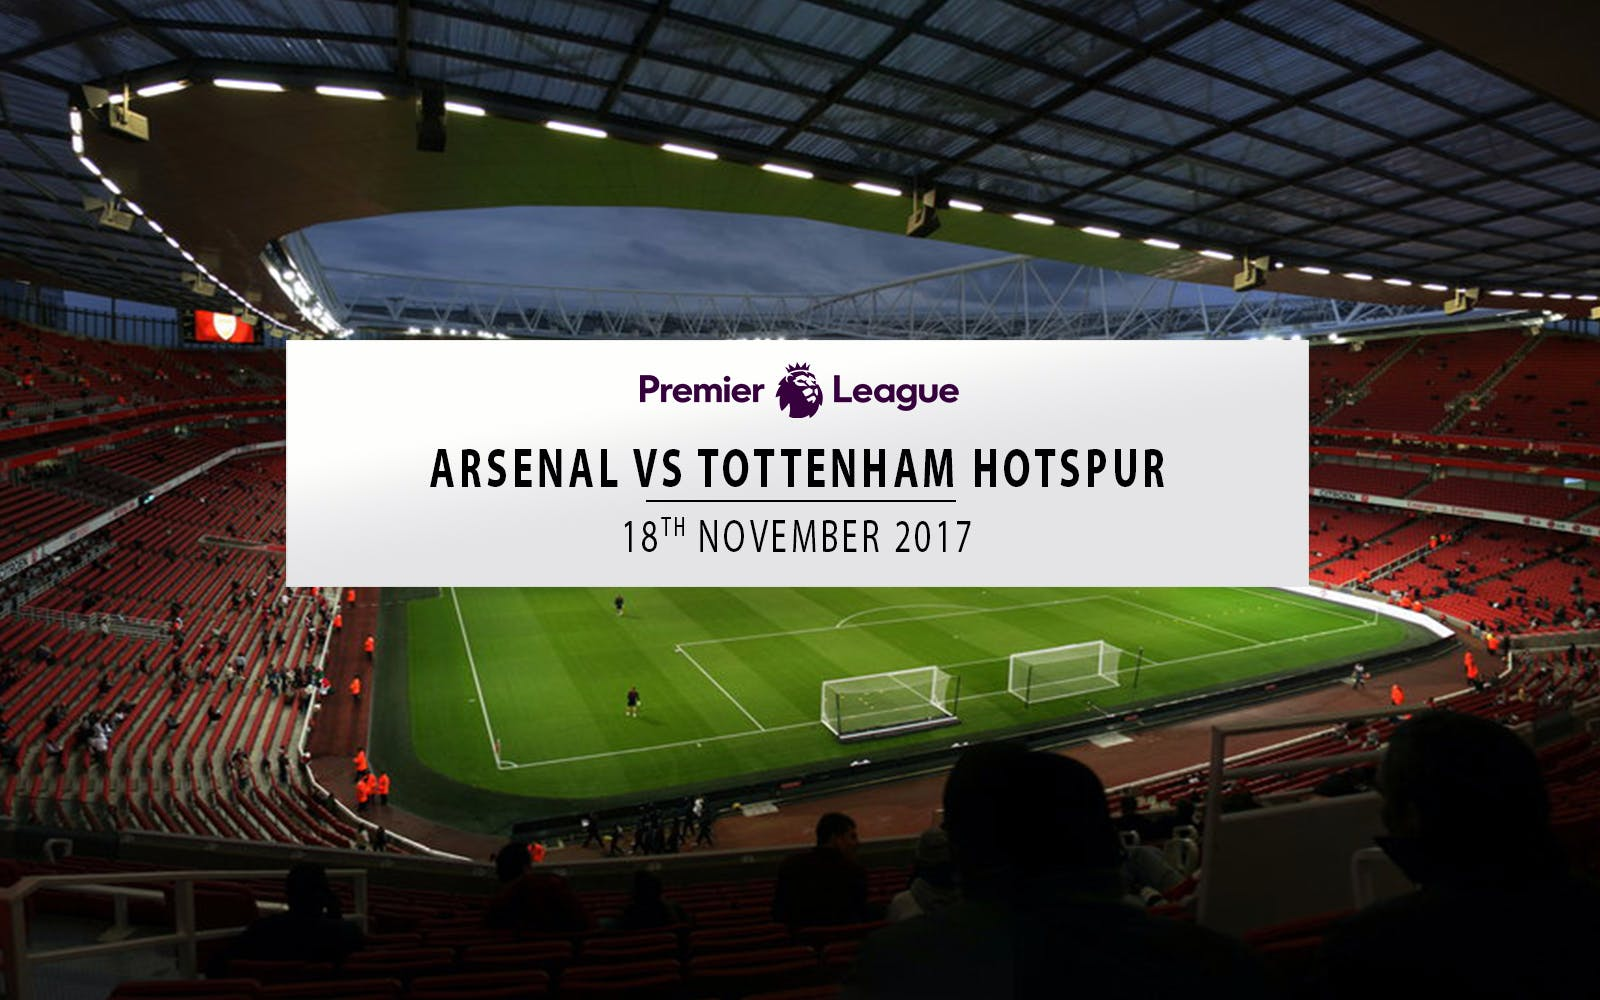 arsenal vs tottenham hotspur-1